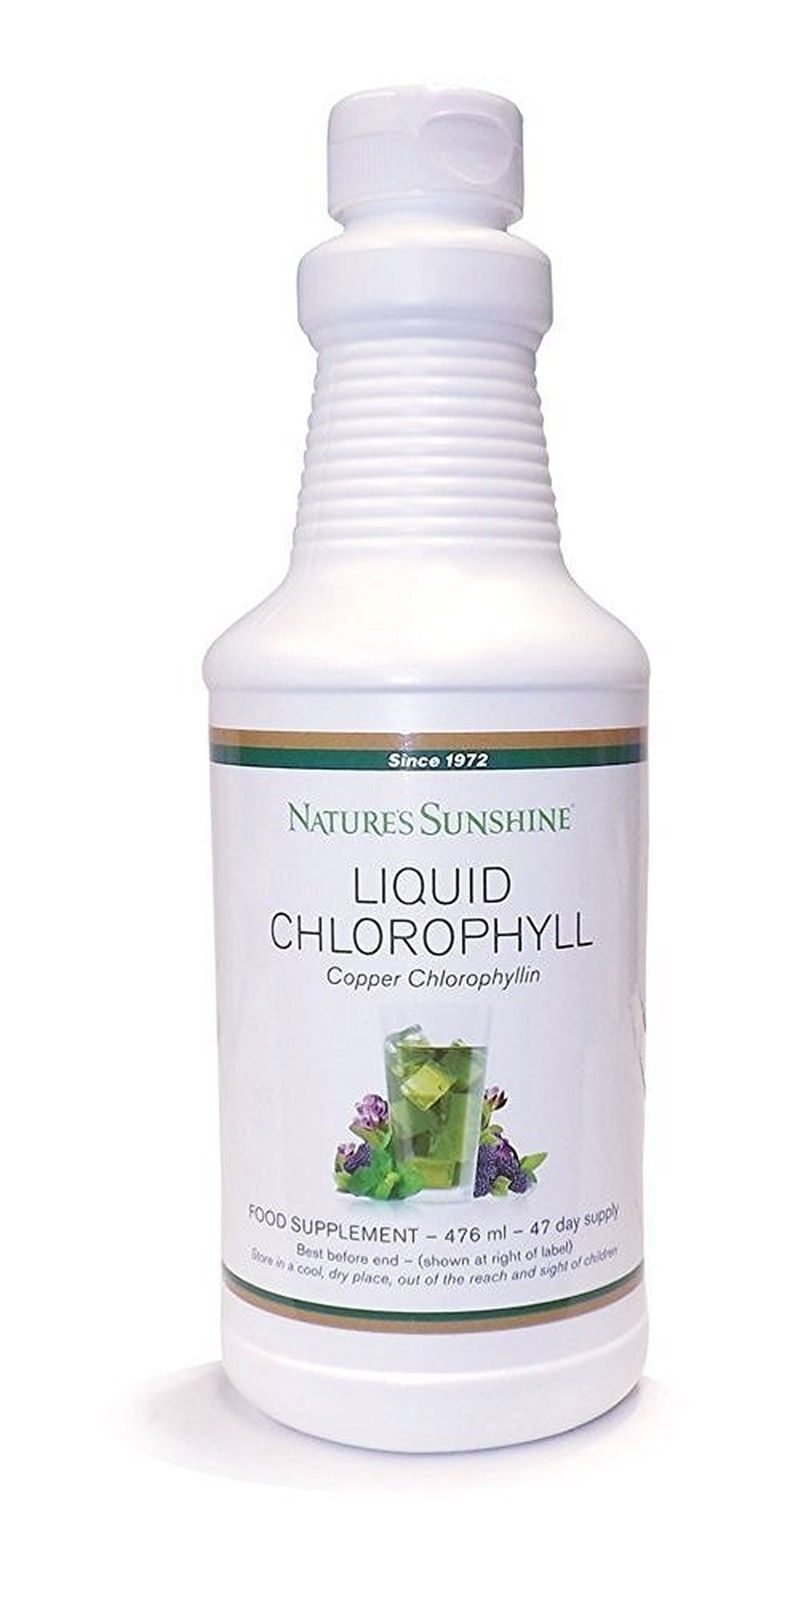 Natures sunshine liquid chlorophyll